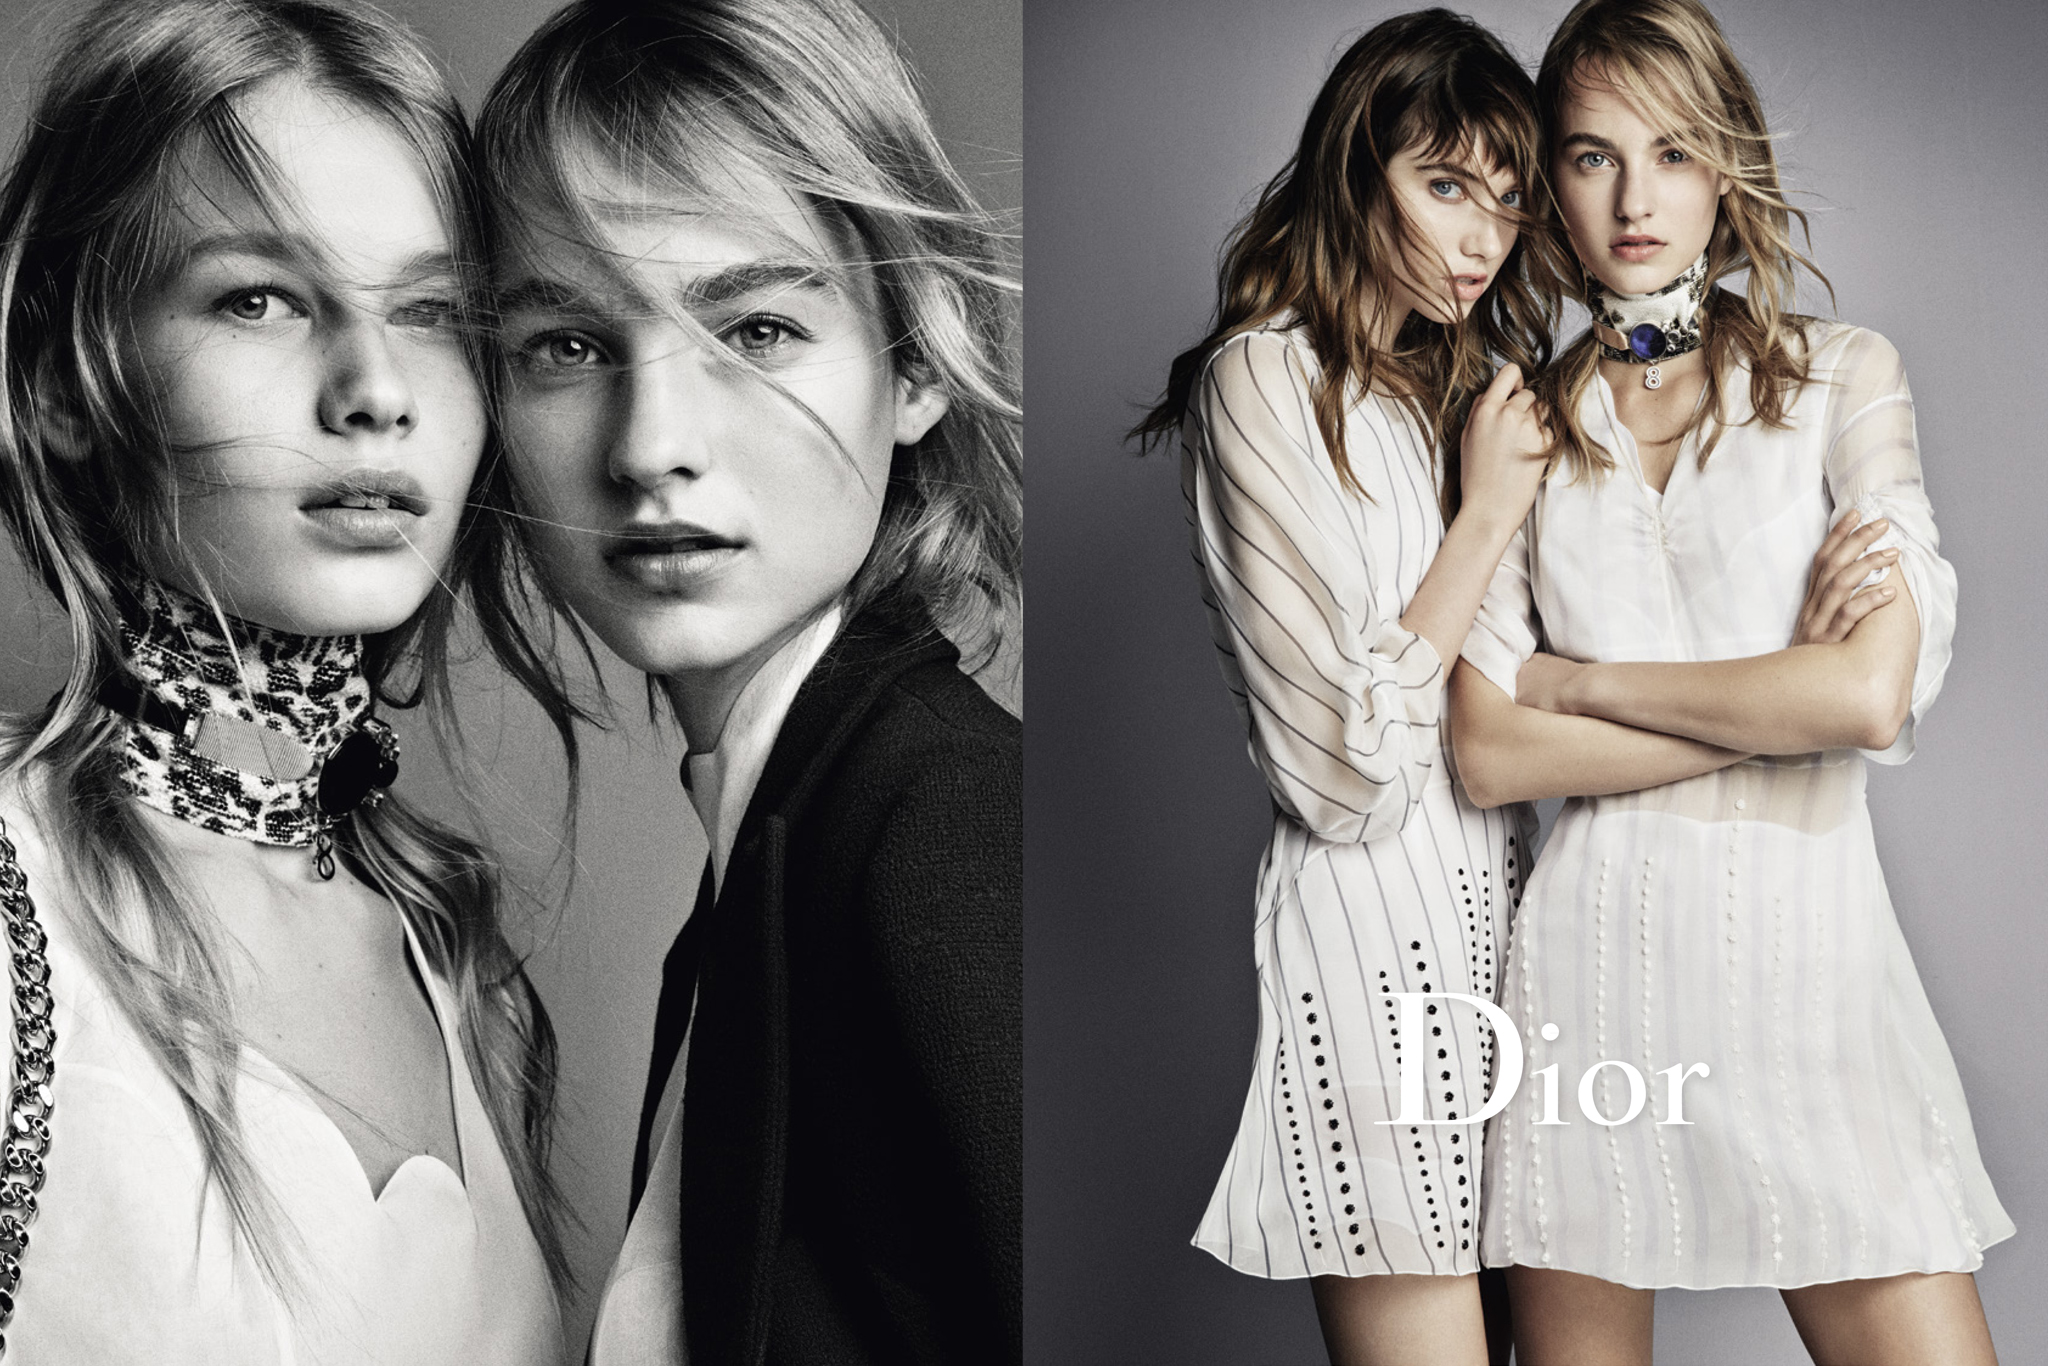 A visual from the Dior spring '16 campaign shot by Patrick Demarchelier